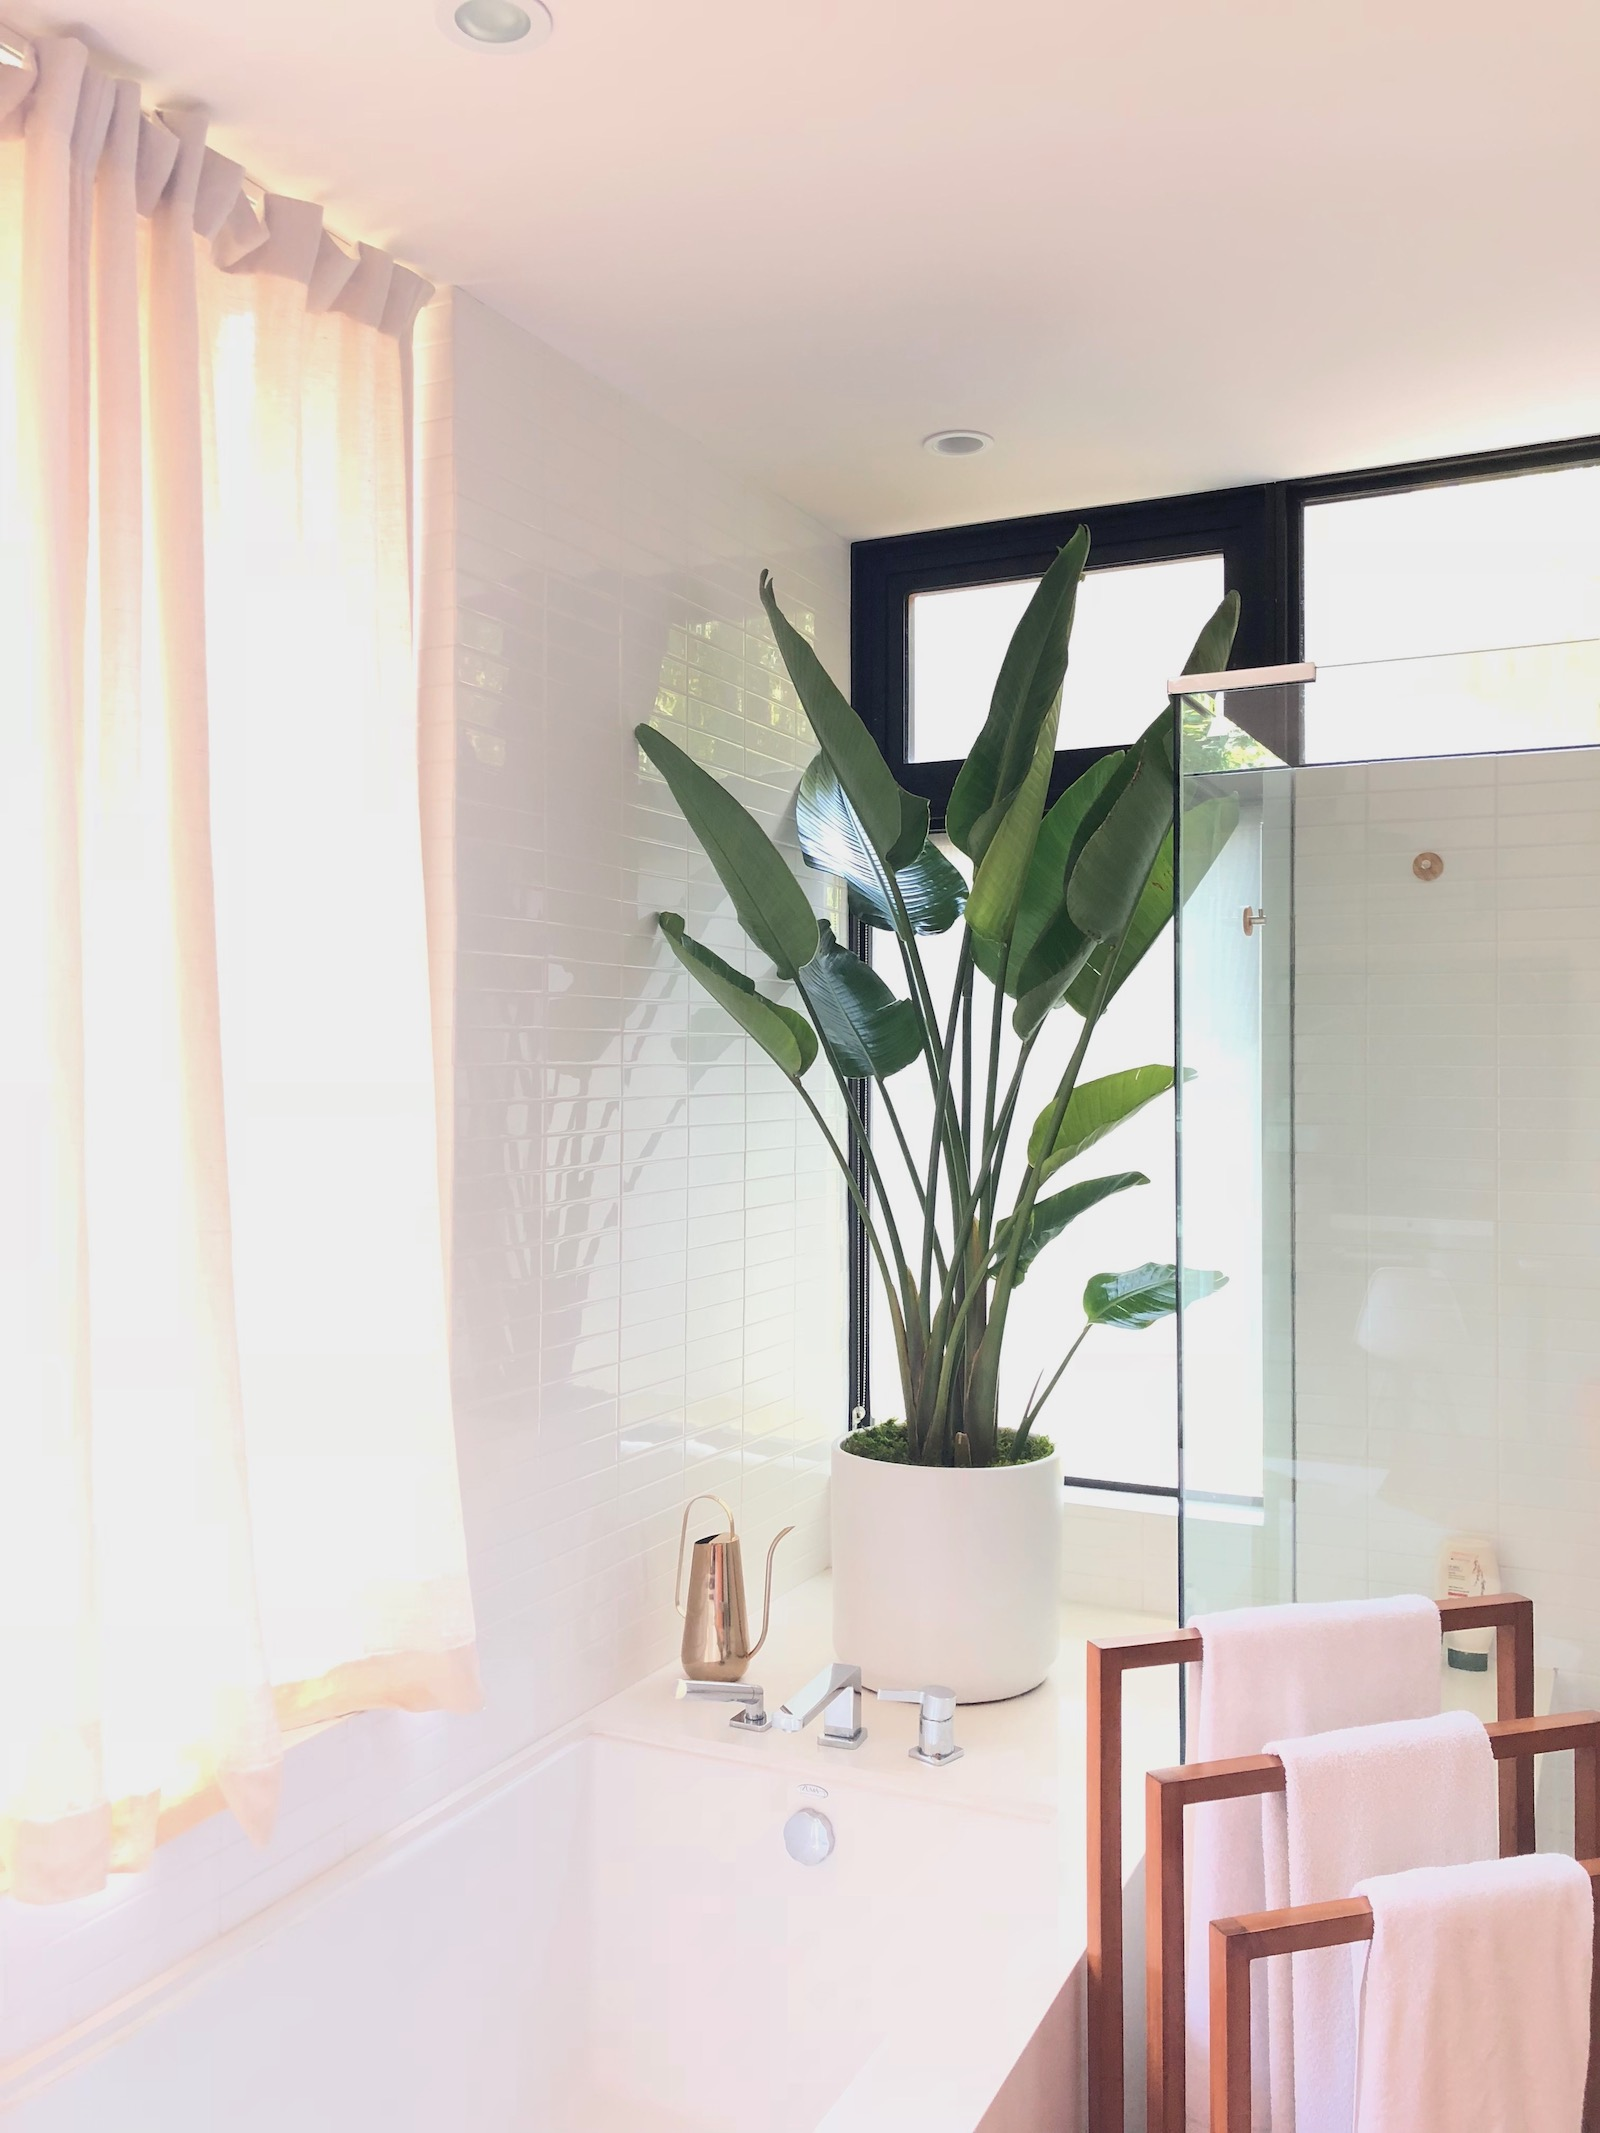 The best plants for the bathroom: the bird of a paradise is a moisture-loving plant that will love the humid environment of a bathroom